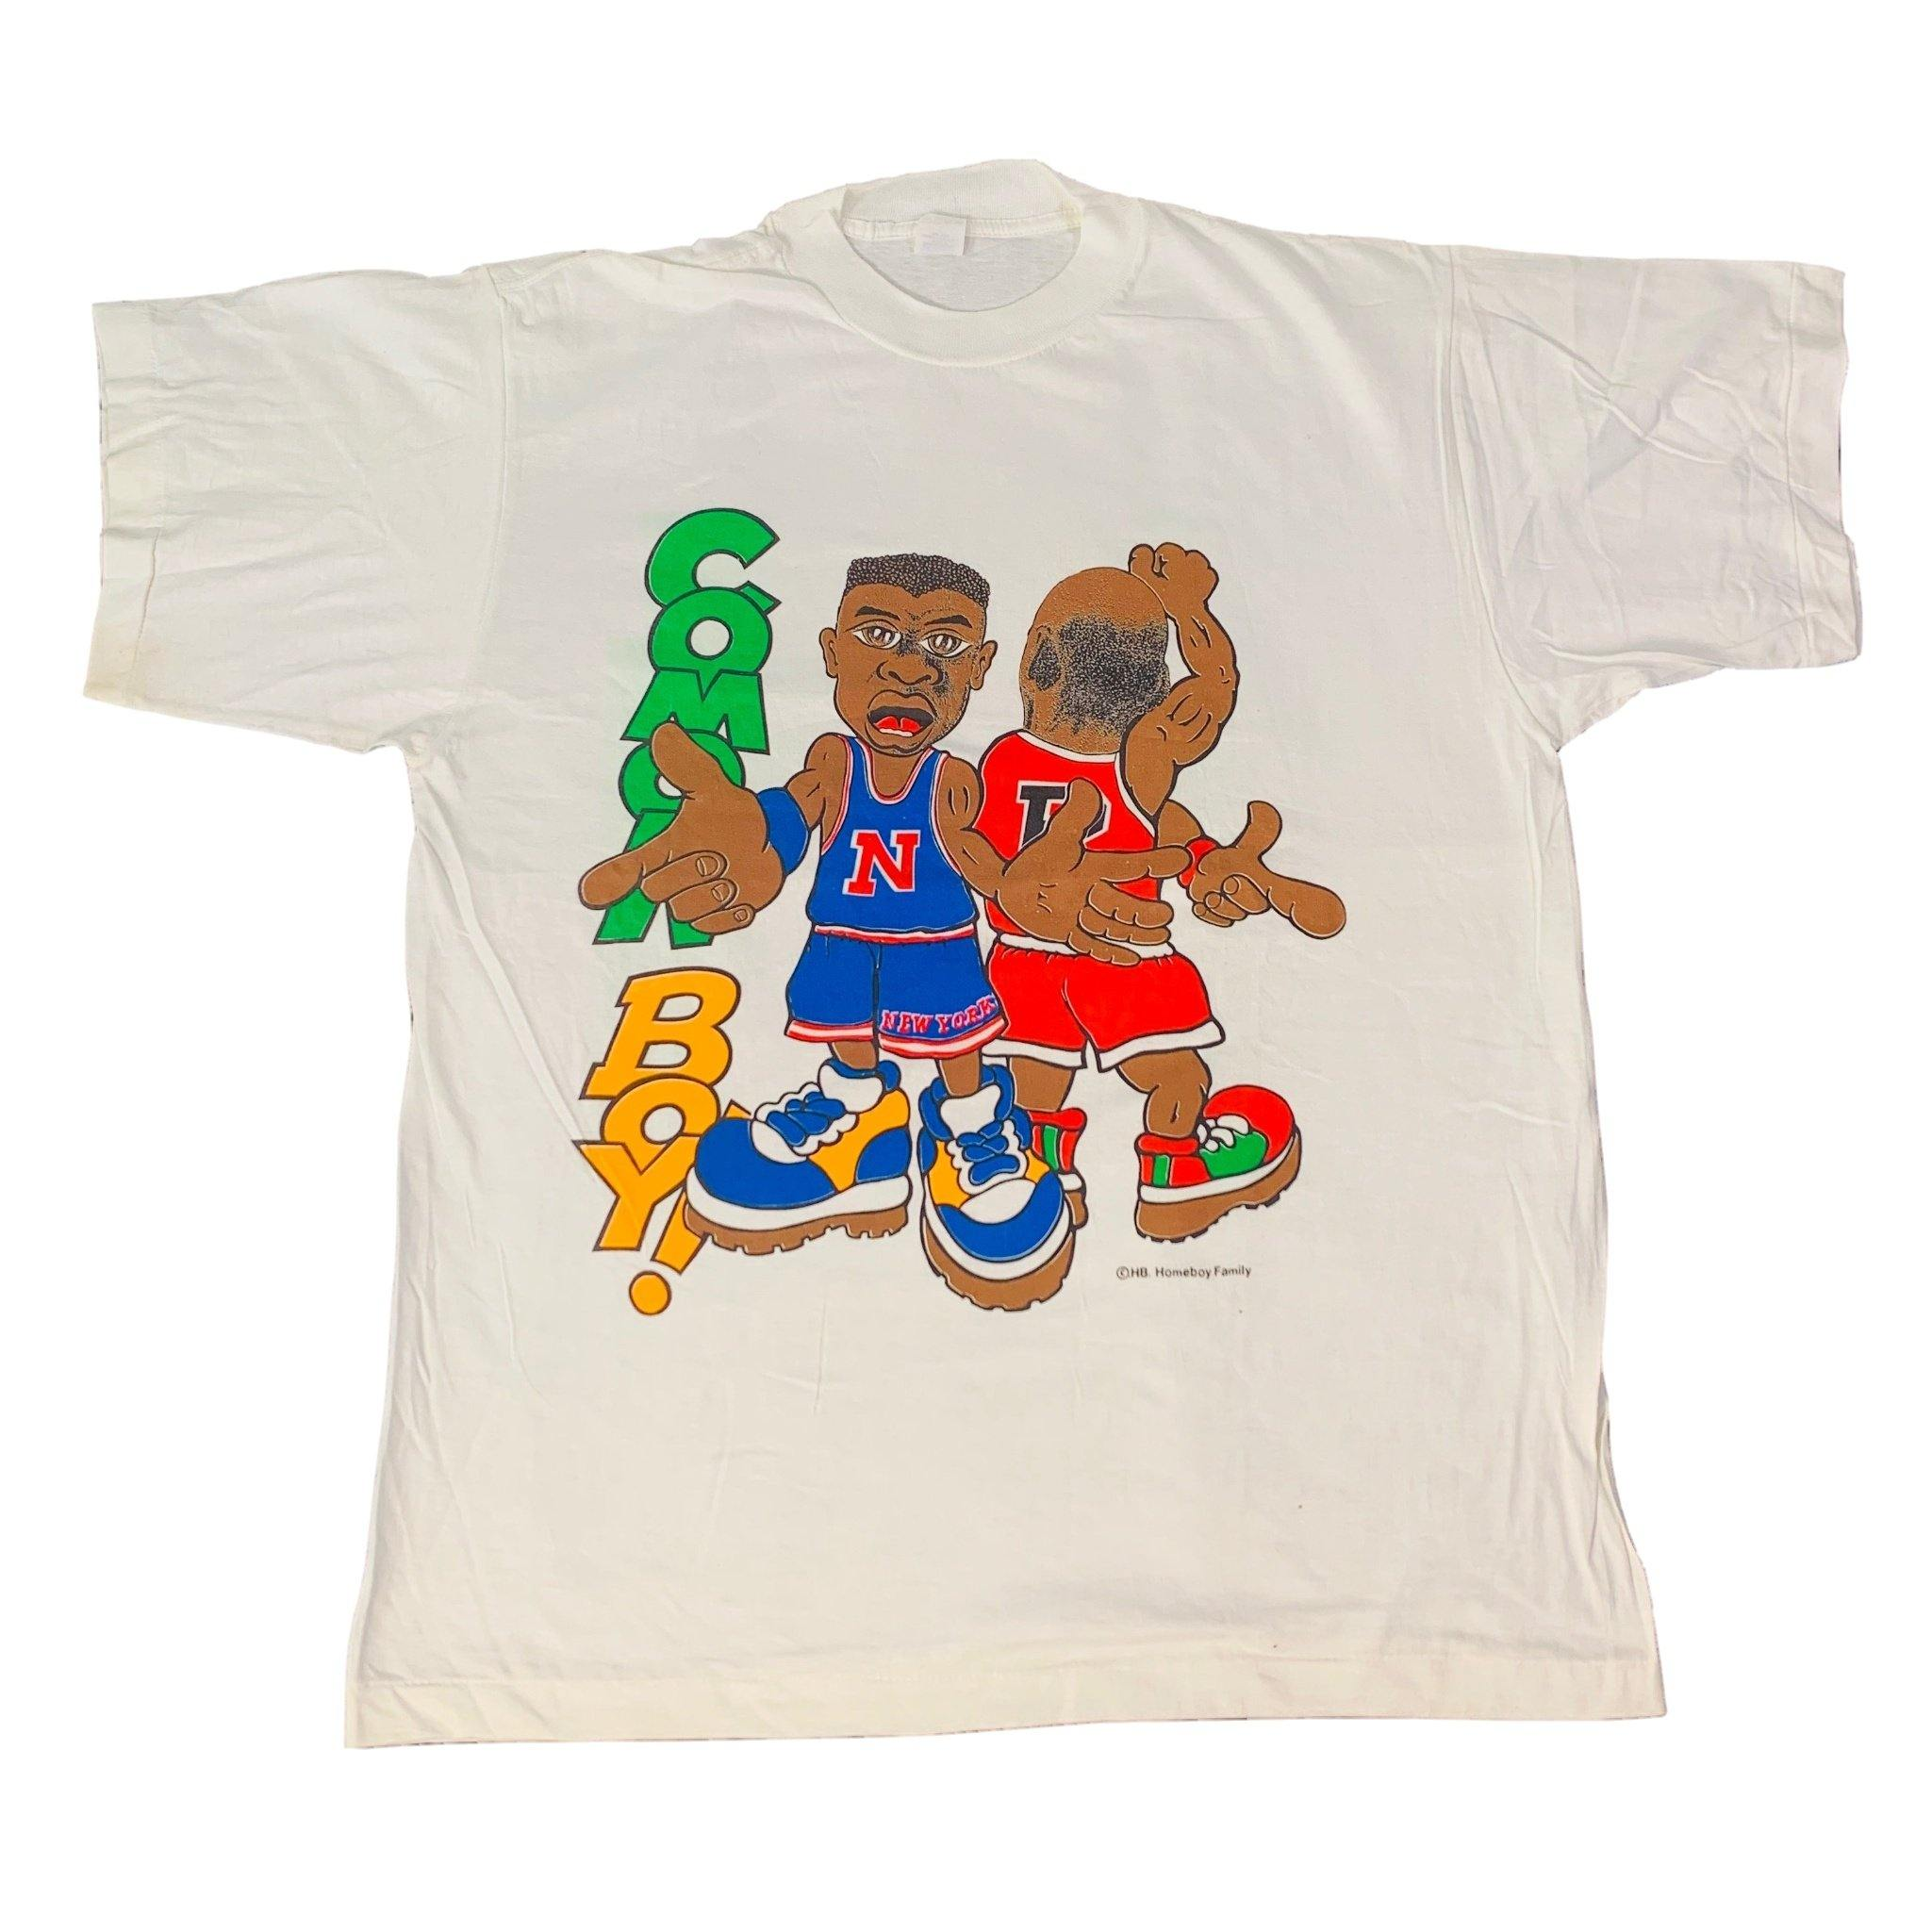 "Vintage New York Knicks Chicago Bulls ""Cmon Boy!"" T-Shirt"